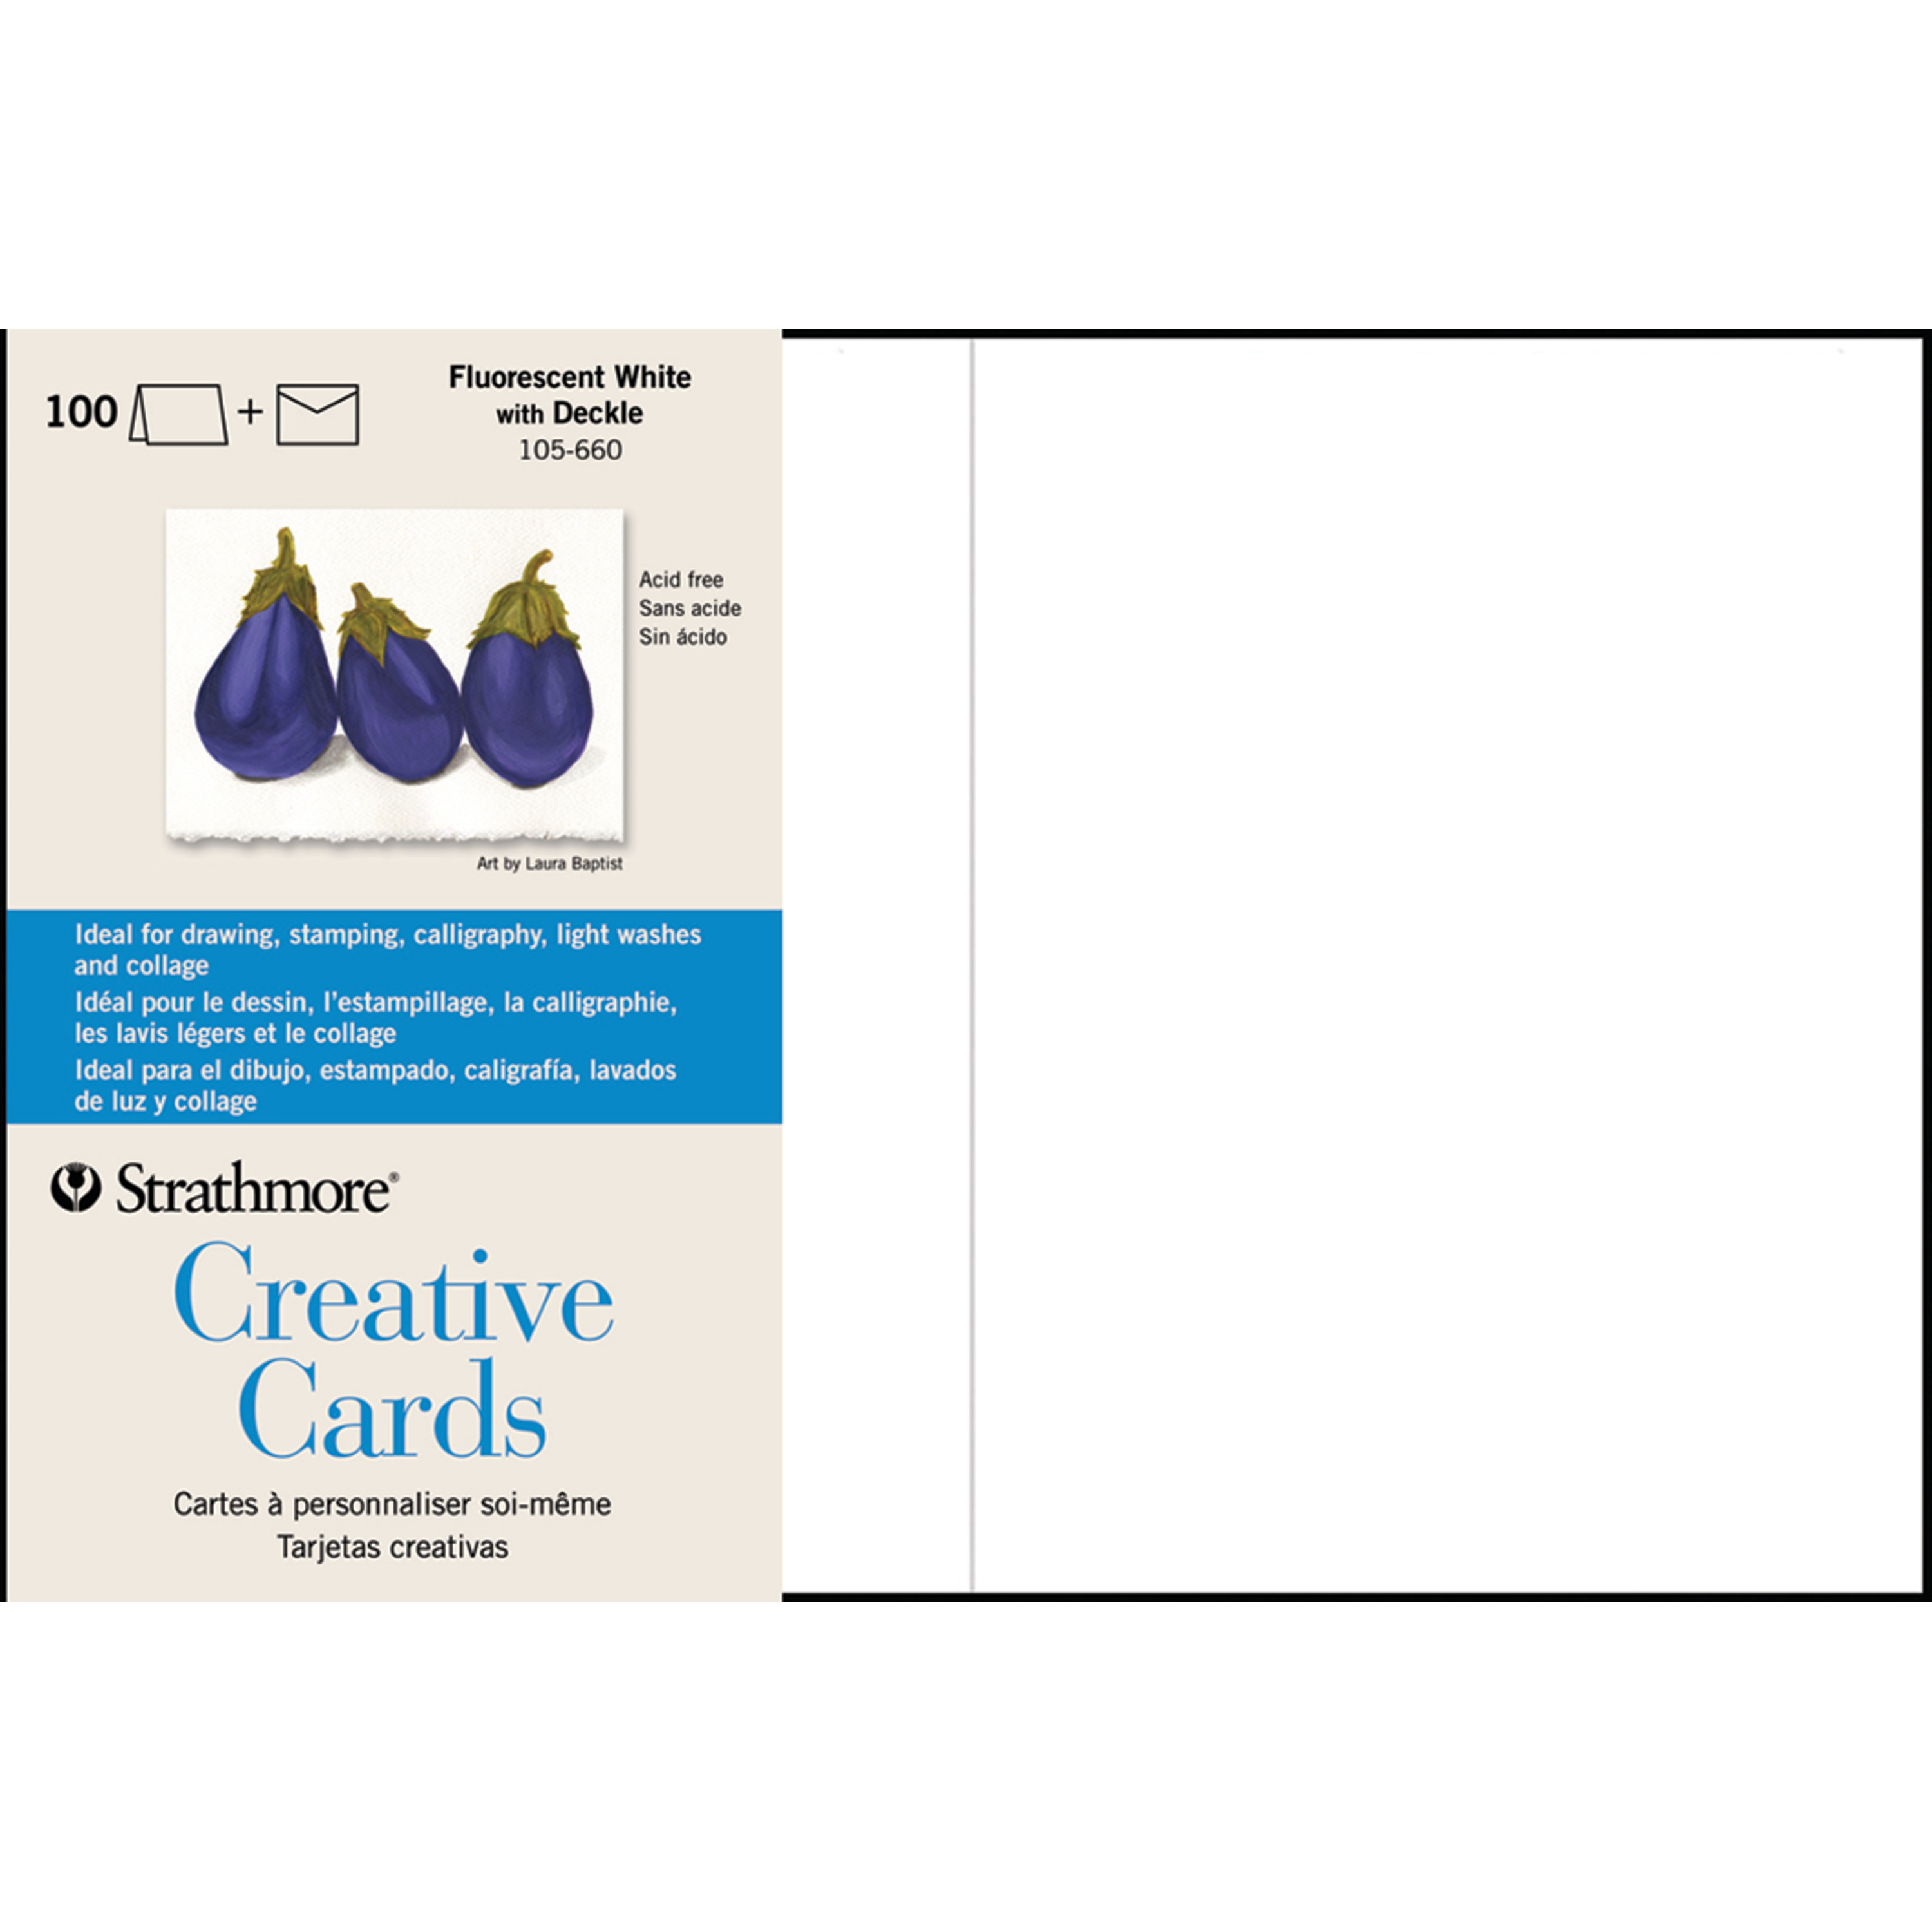 Strathmore Creative Cards, Full Size, Fluorescent White with Deckle, 100/Pkg.